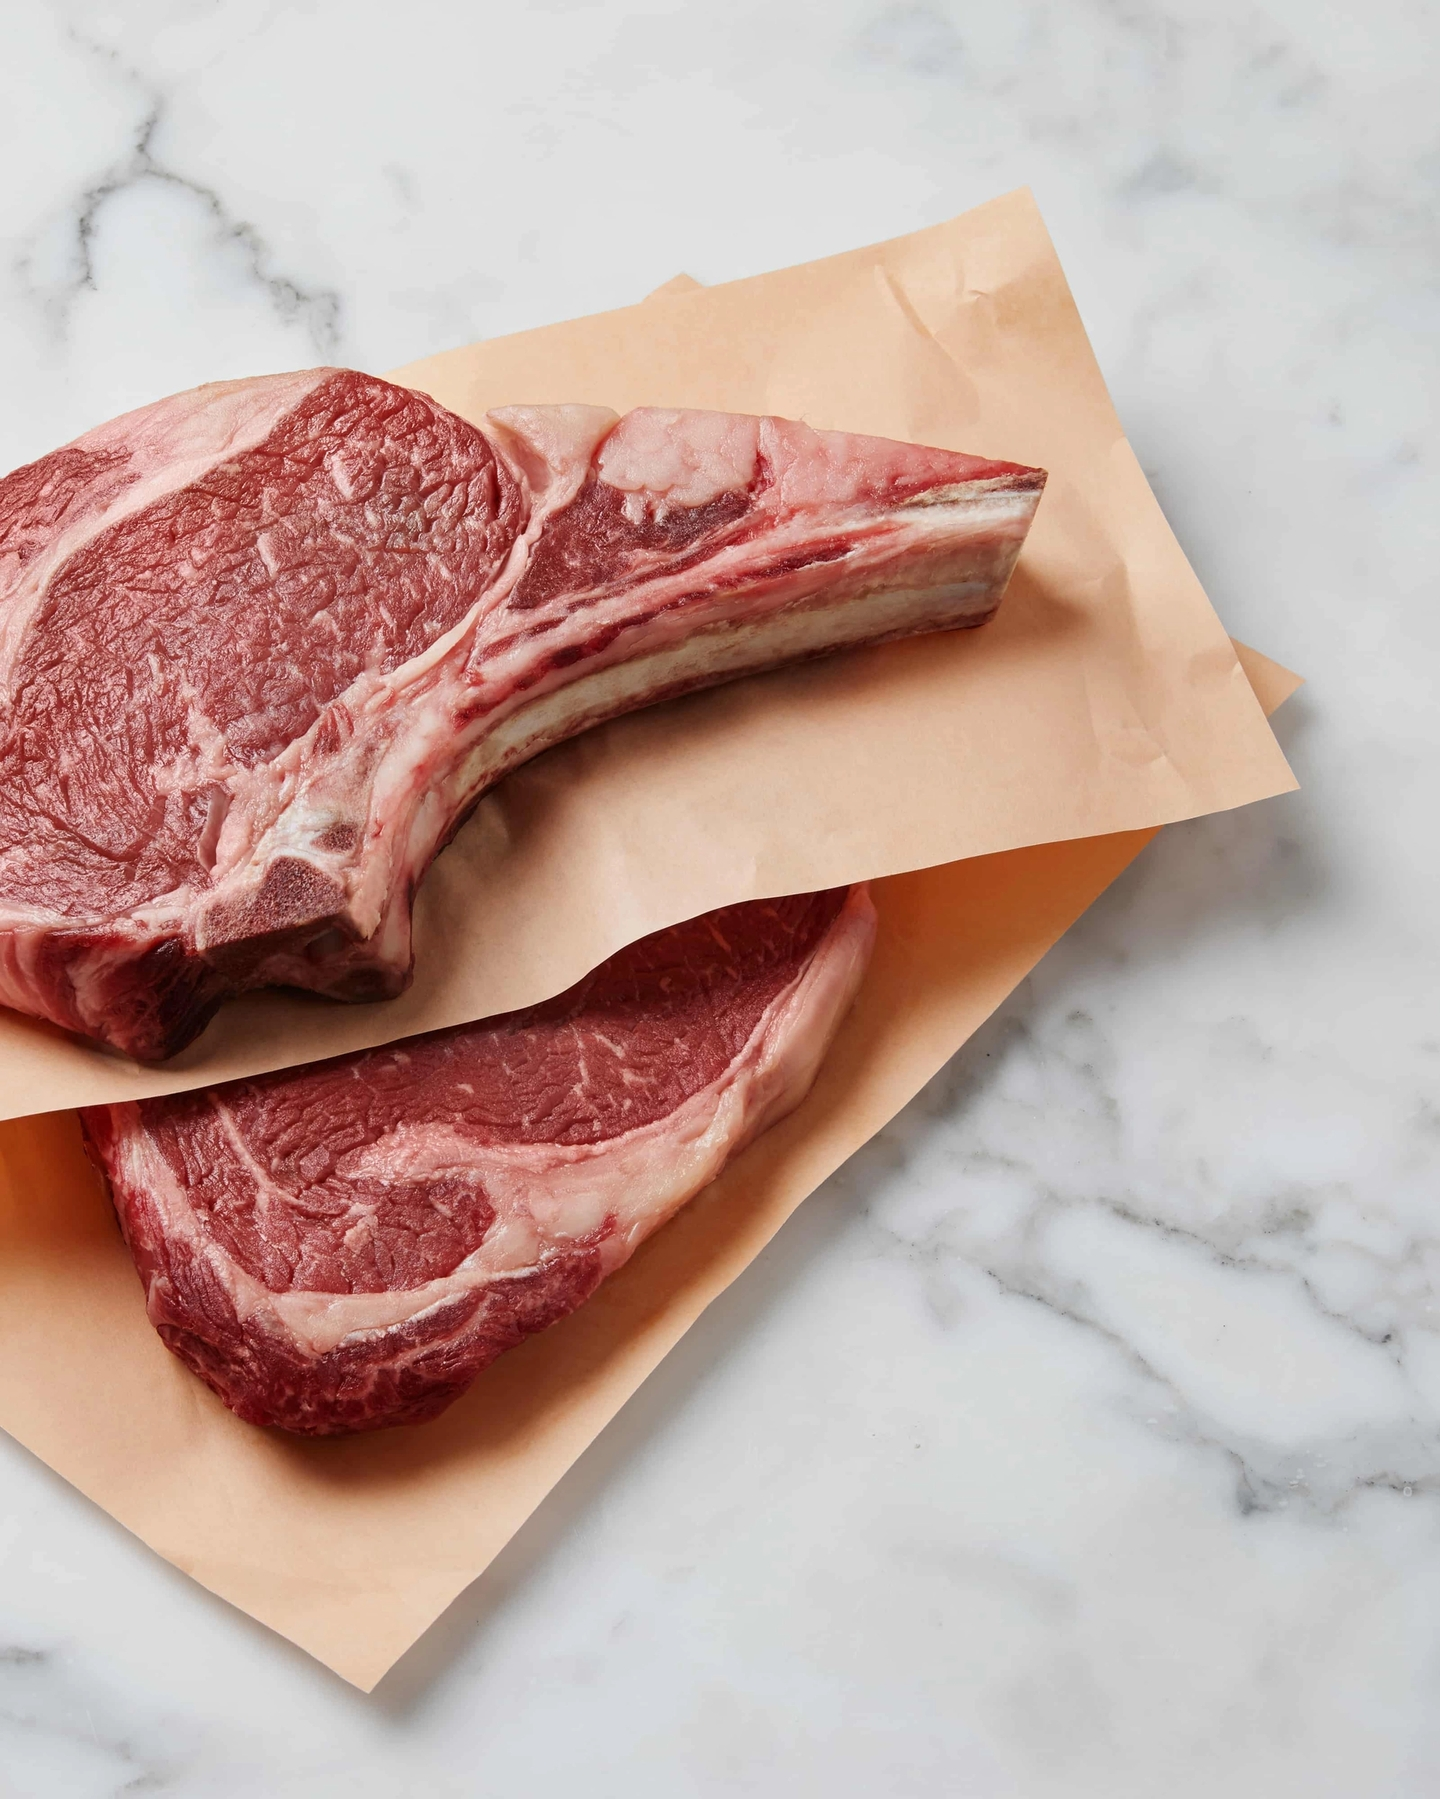 Two raw ribeye steaks on marble counter